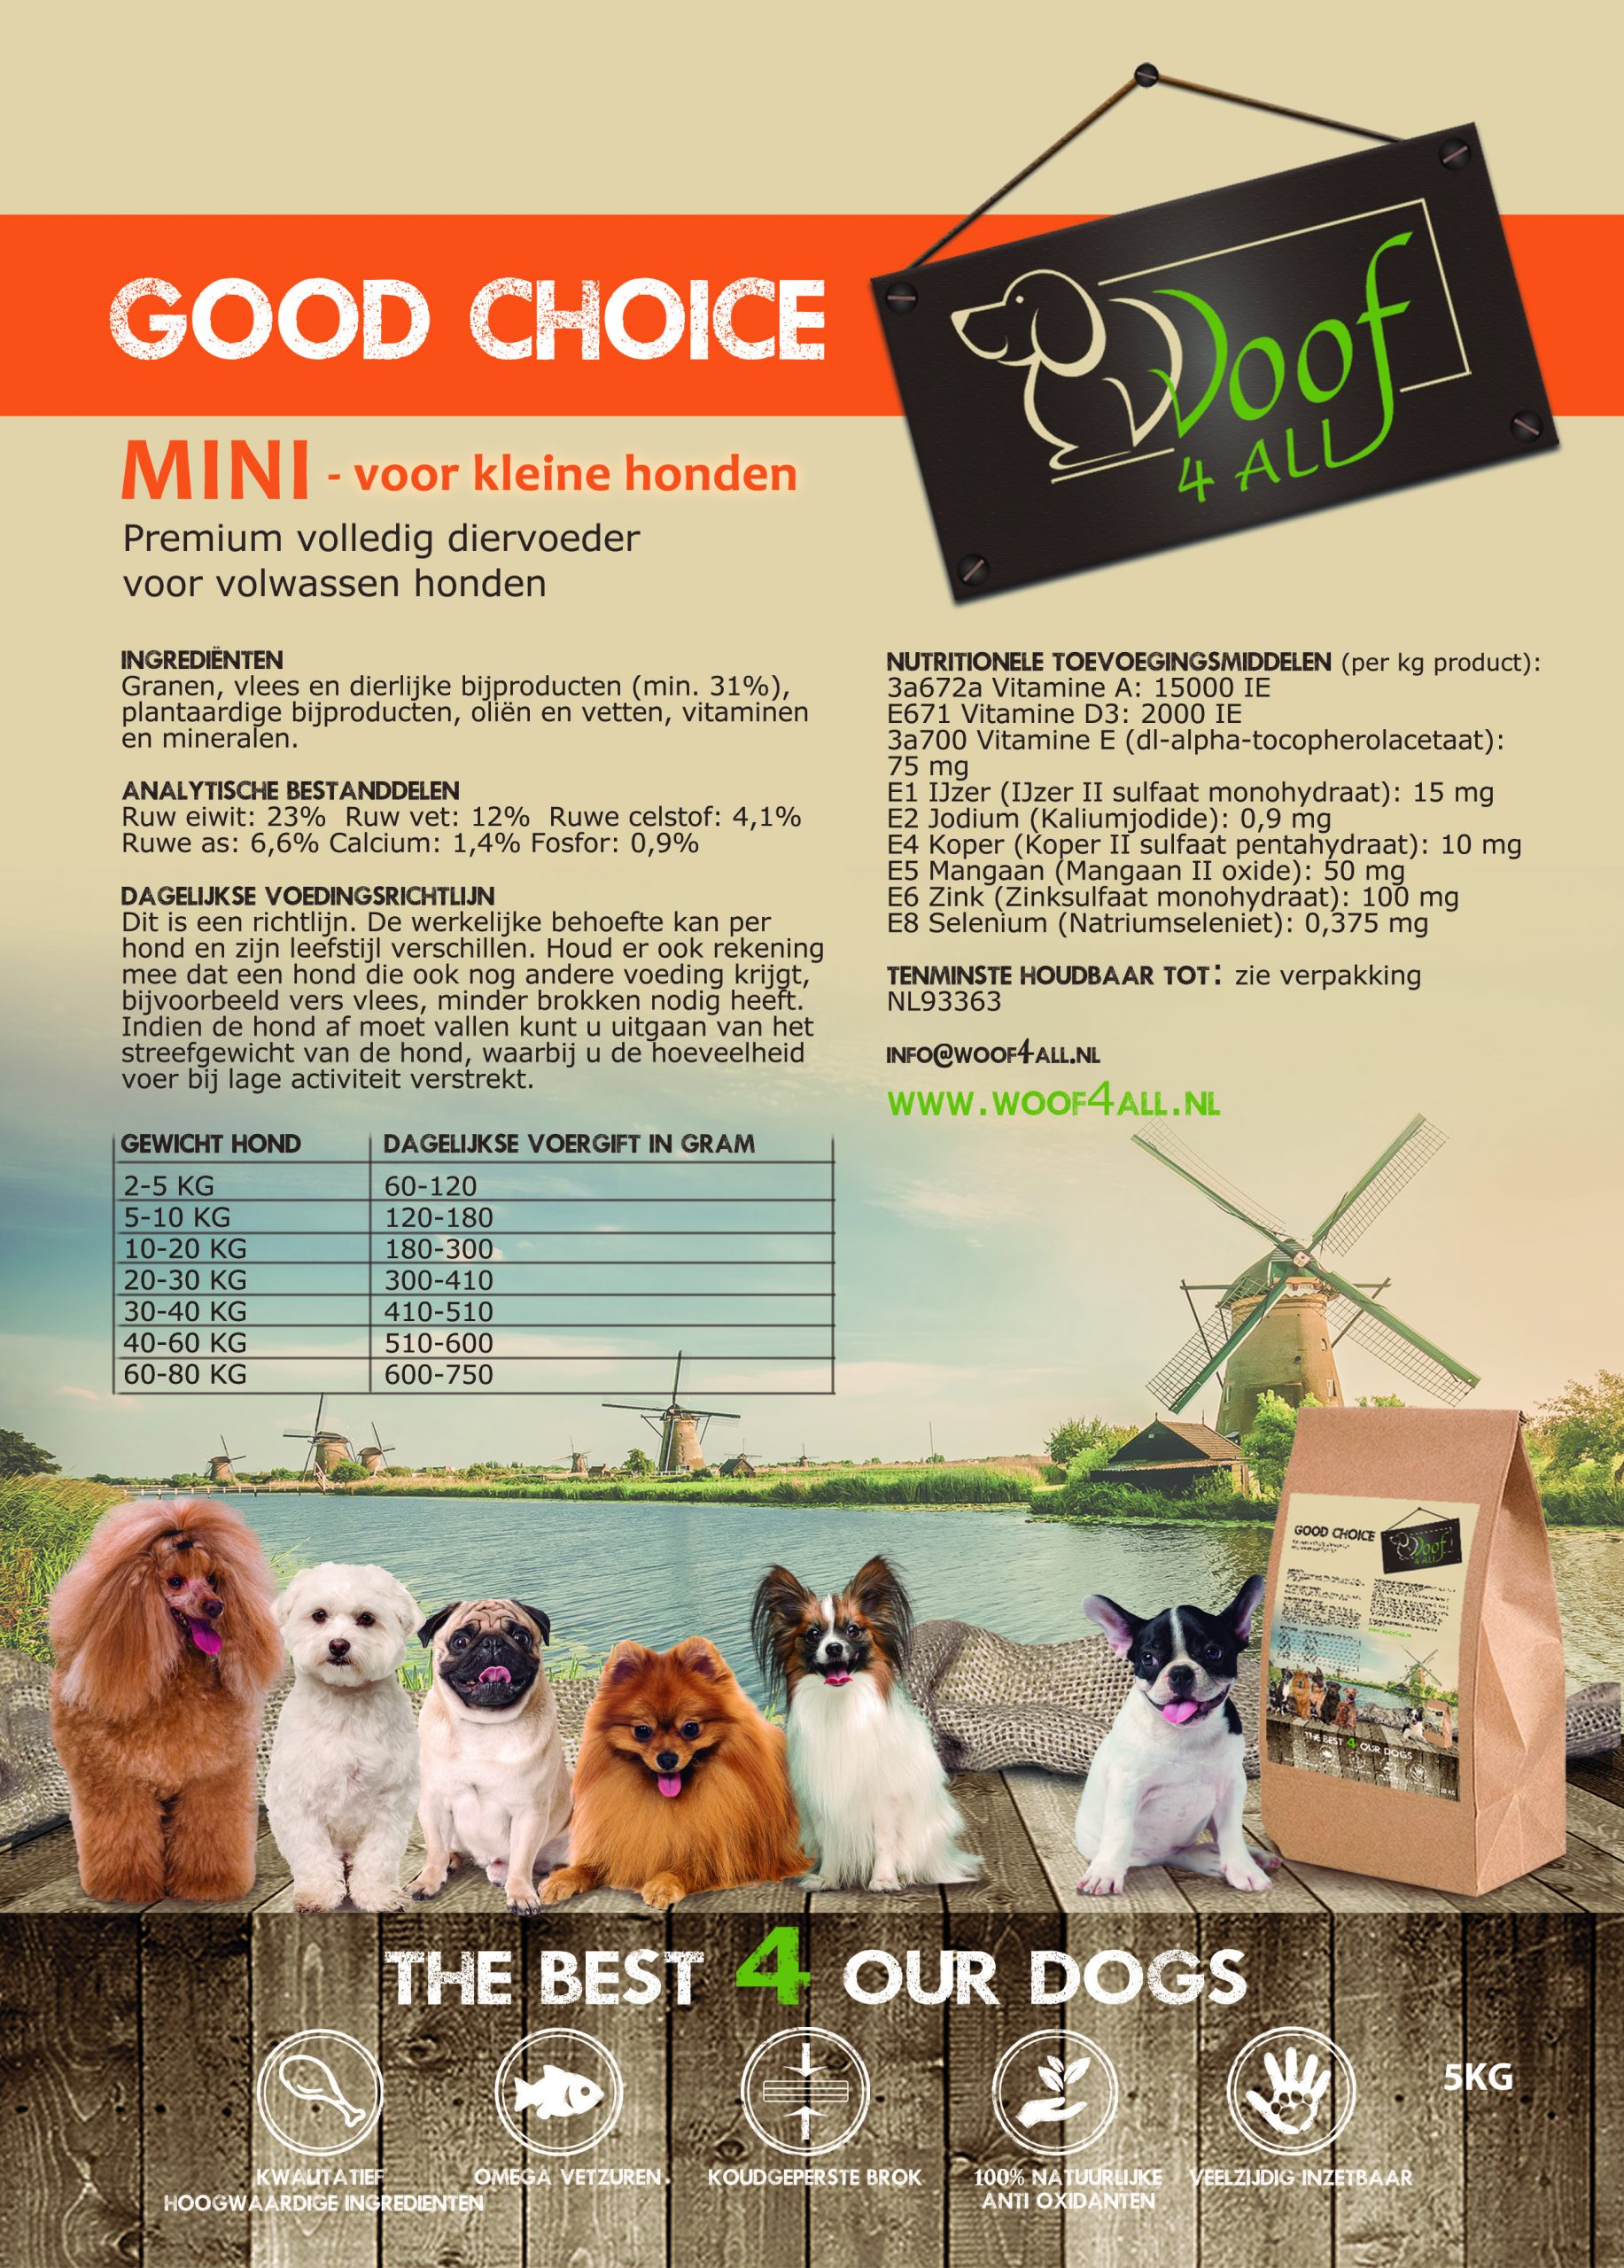 Woof 4 All - Best Choice hondenvoer